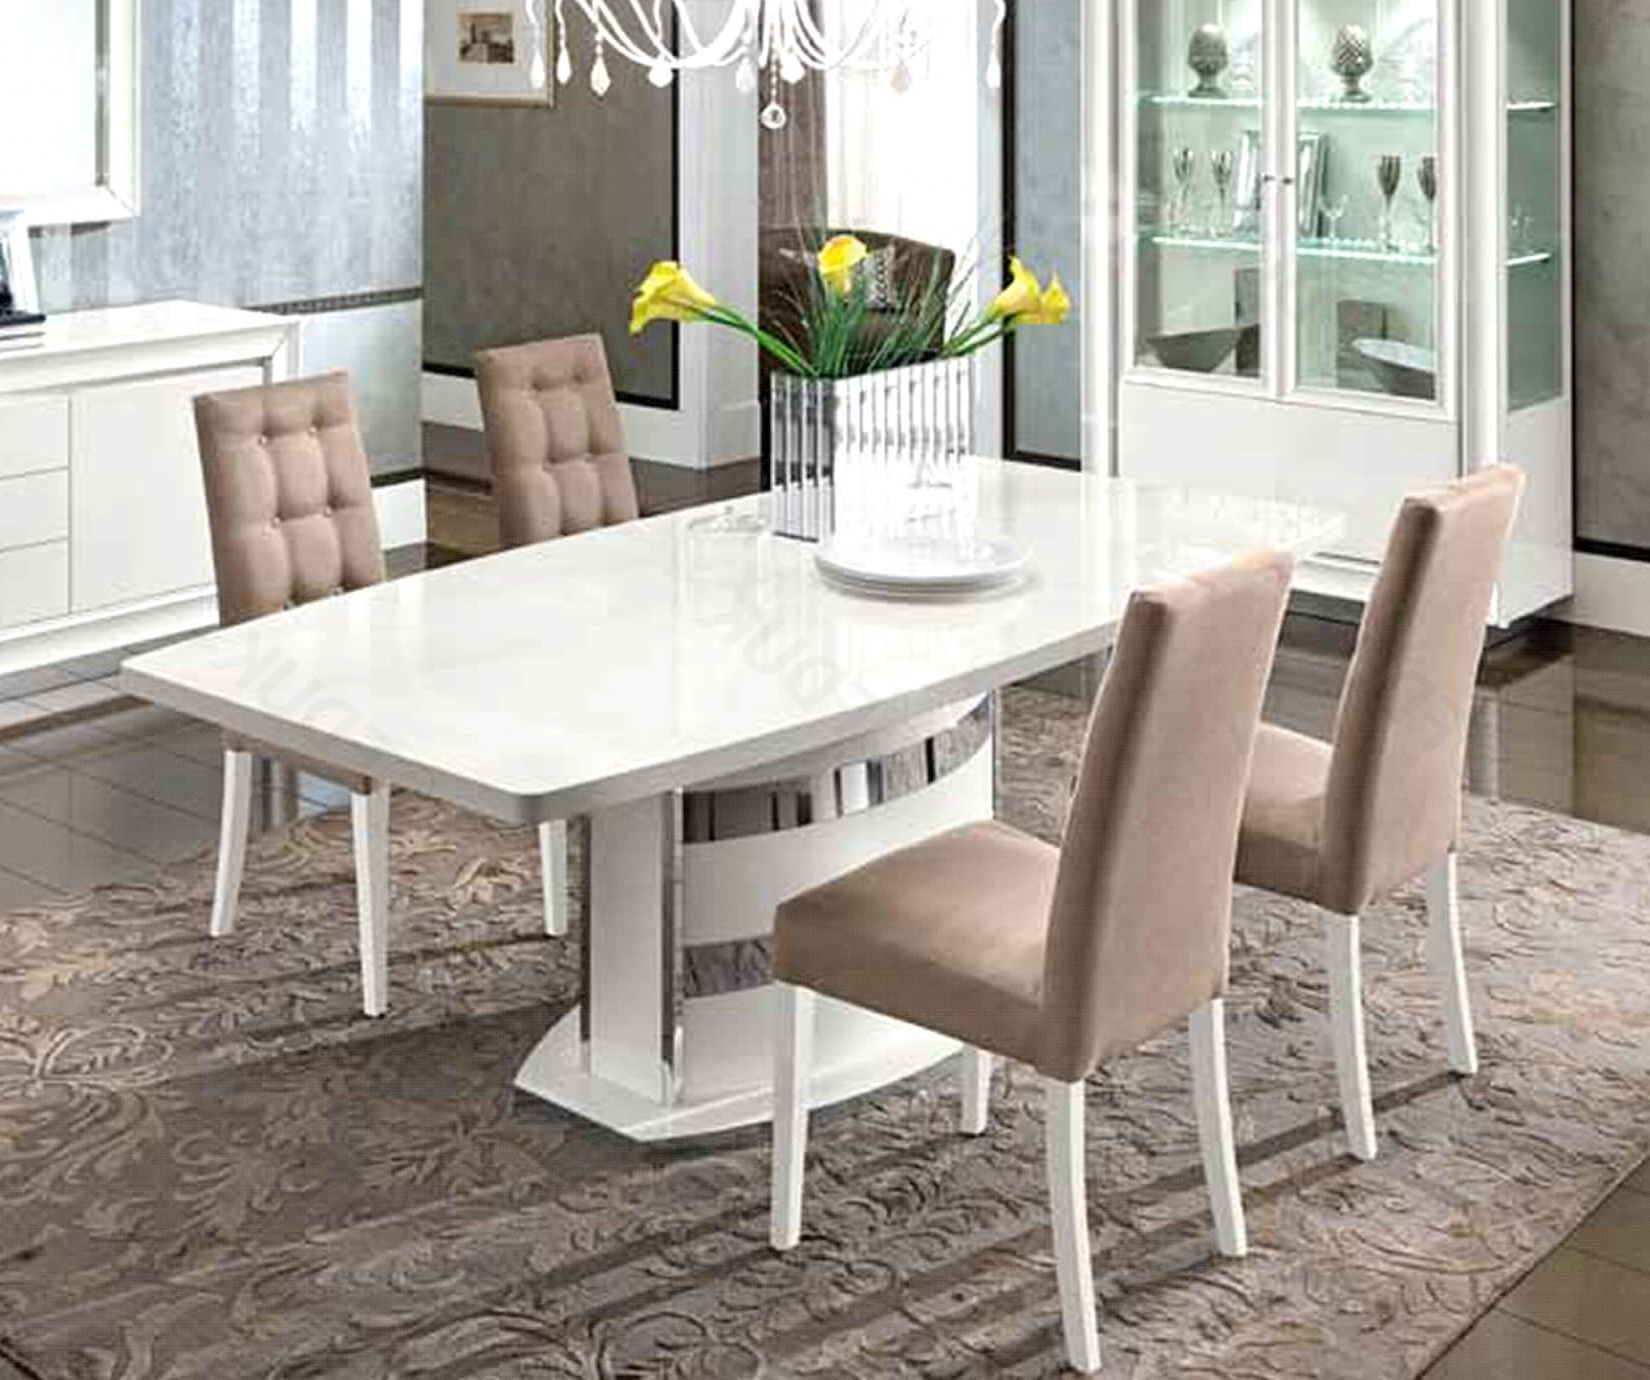 Dama Bianca White High Gloss Extending In White Gloss Dining Room Tables (Gallery 4 of 25)